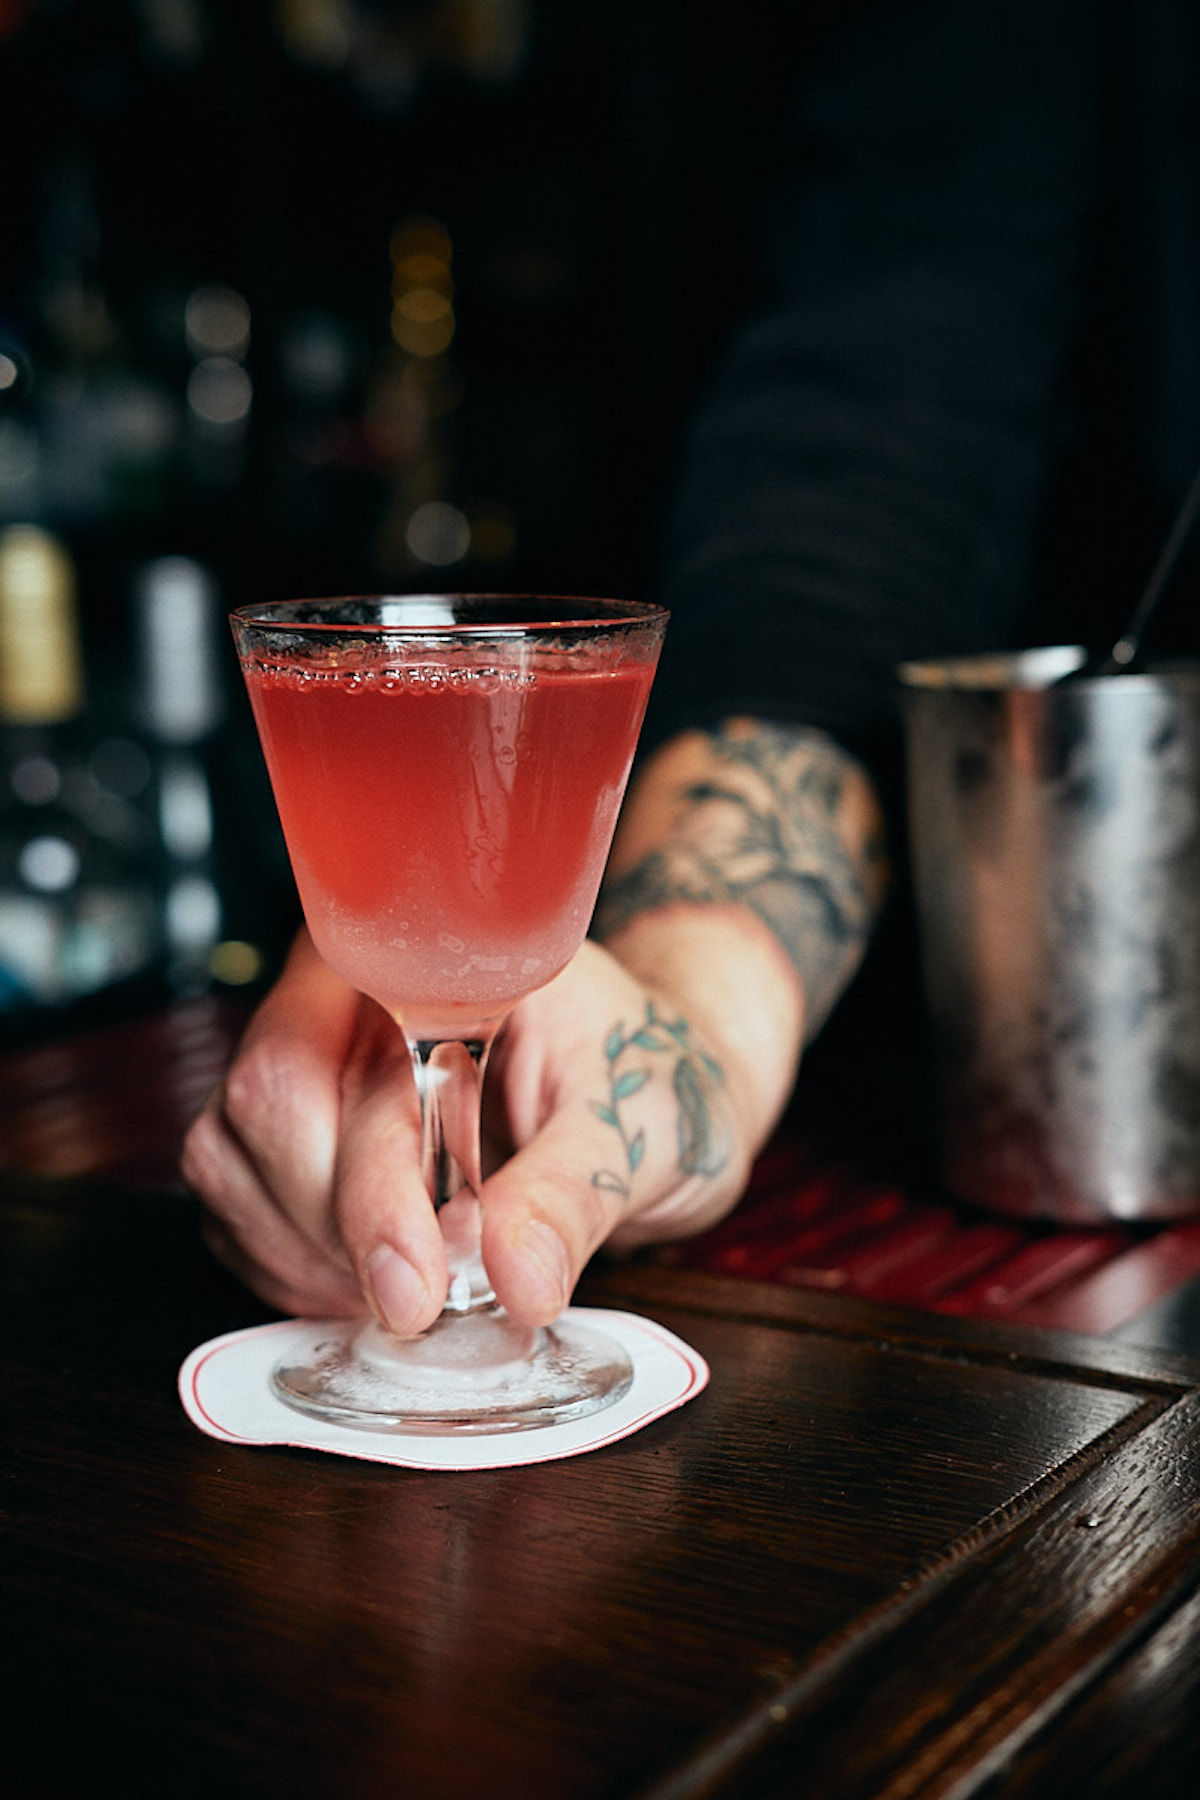 Sunglasses Negroni by Konstantin Plesovskikh found at The Pouring Tales